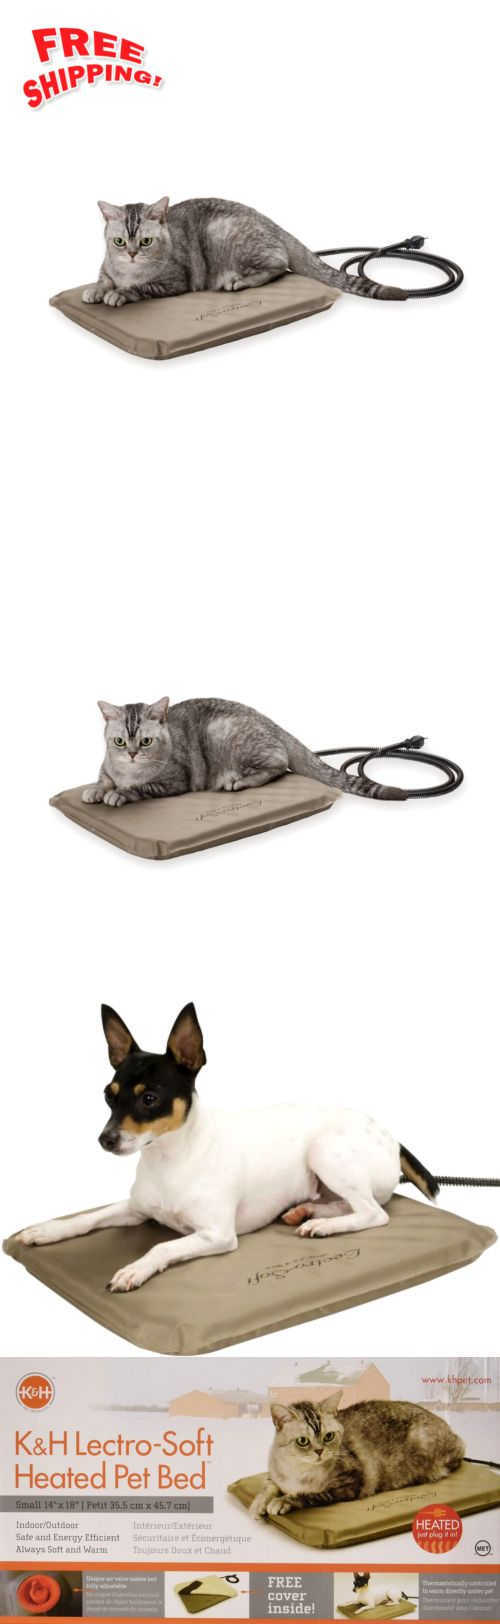 Animals Dog: Small Pet Heating Pad Indoor Outdoor Heated Cat Dog Bed Kennel Doghouse Heater -> BUY IT NOW ONLY: $37.72 on eBay!